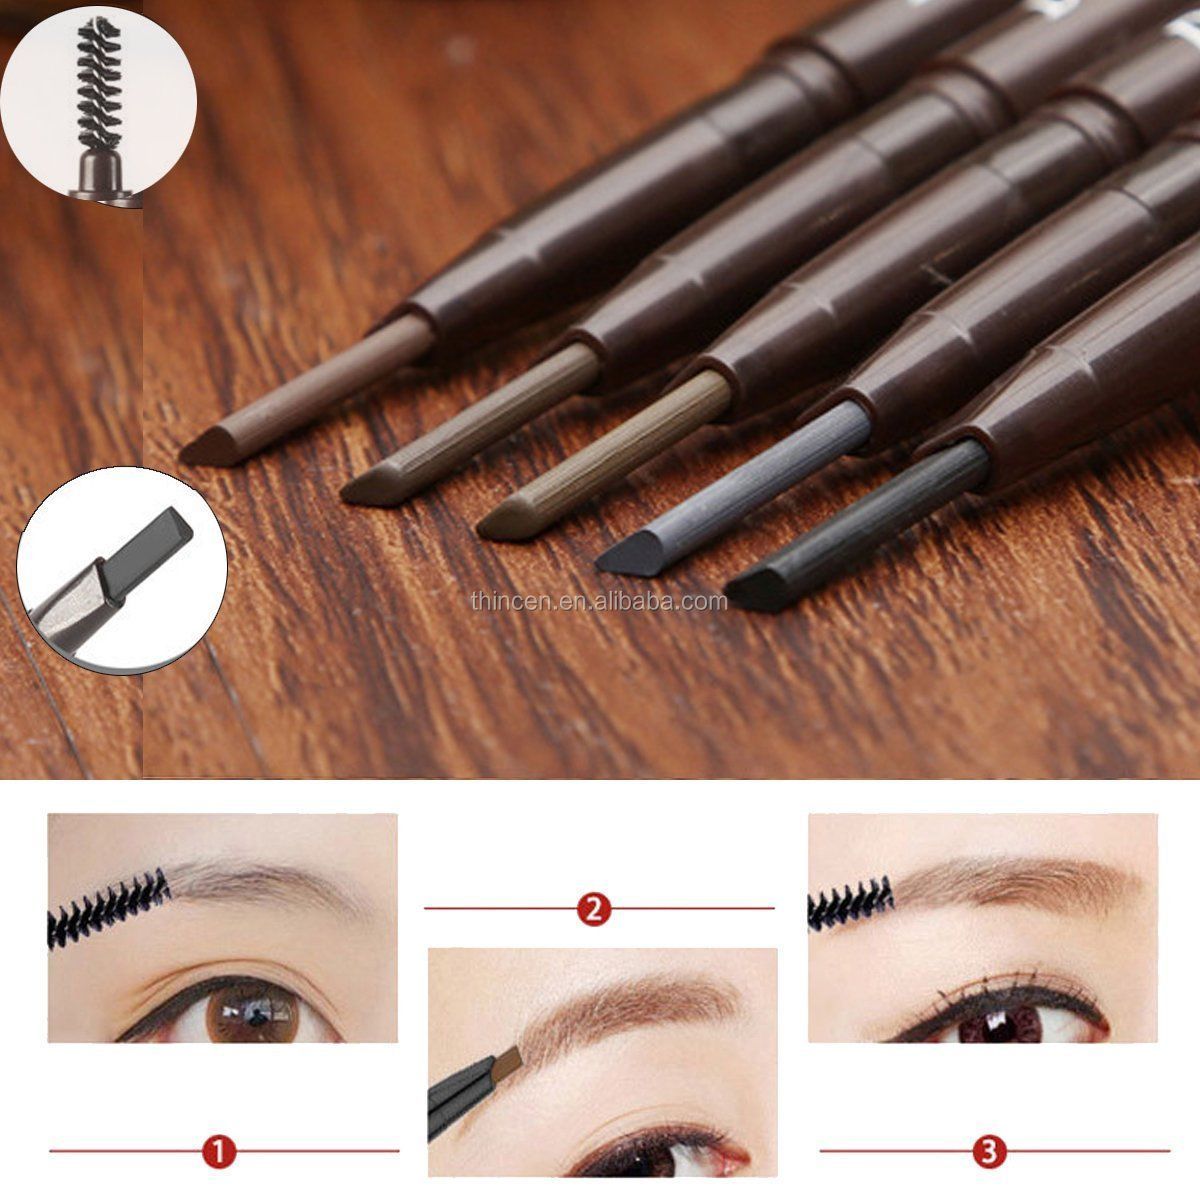 OEM Cosmetic Pigment Private Label Triangle Eyebrow Pencil With Brush